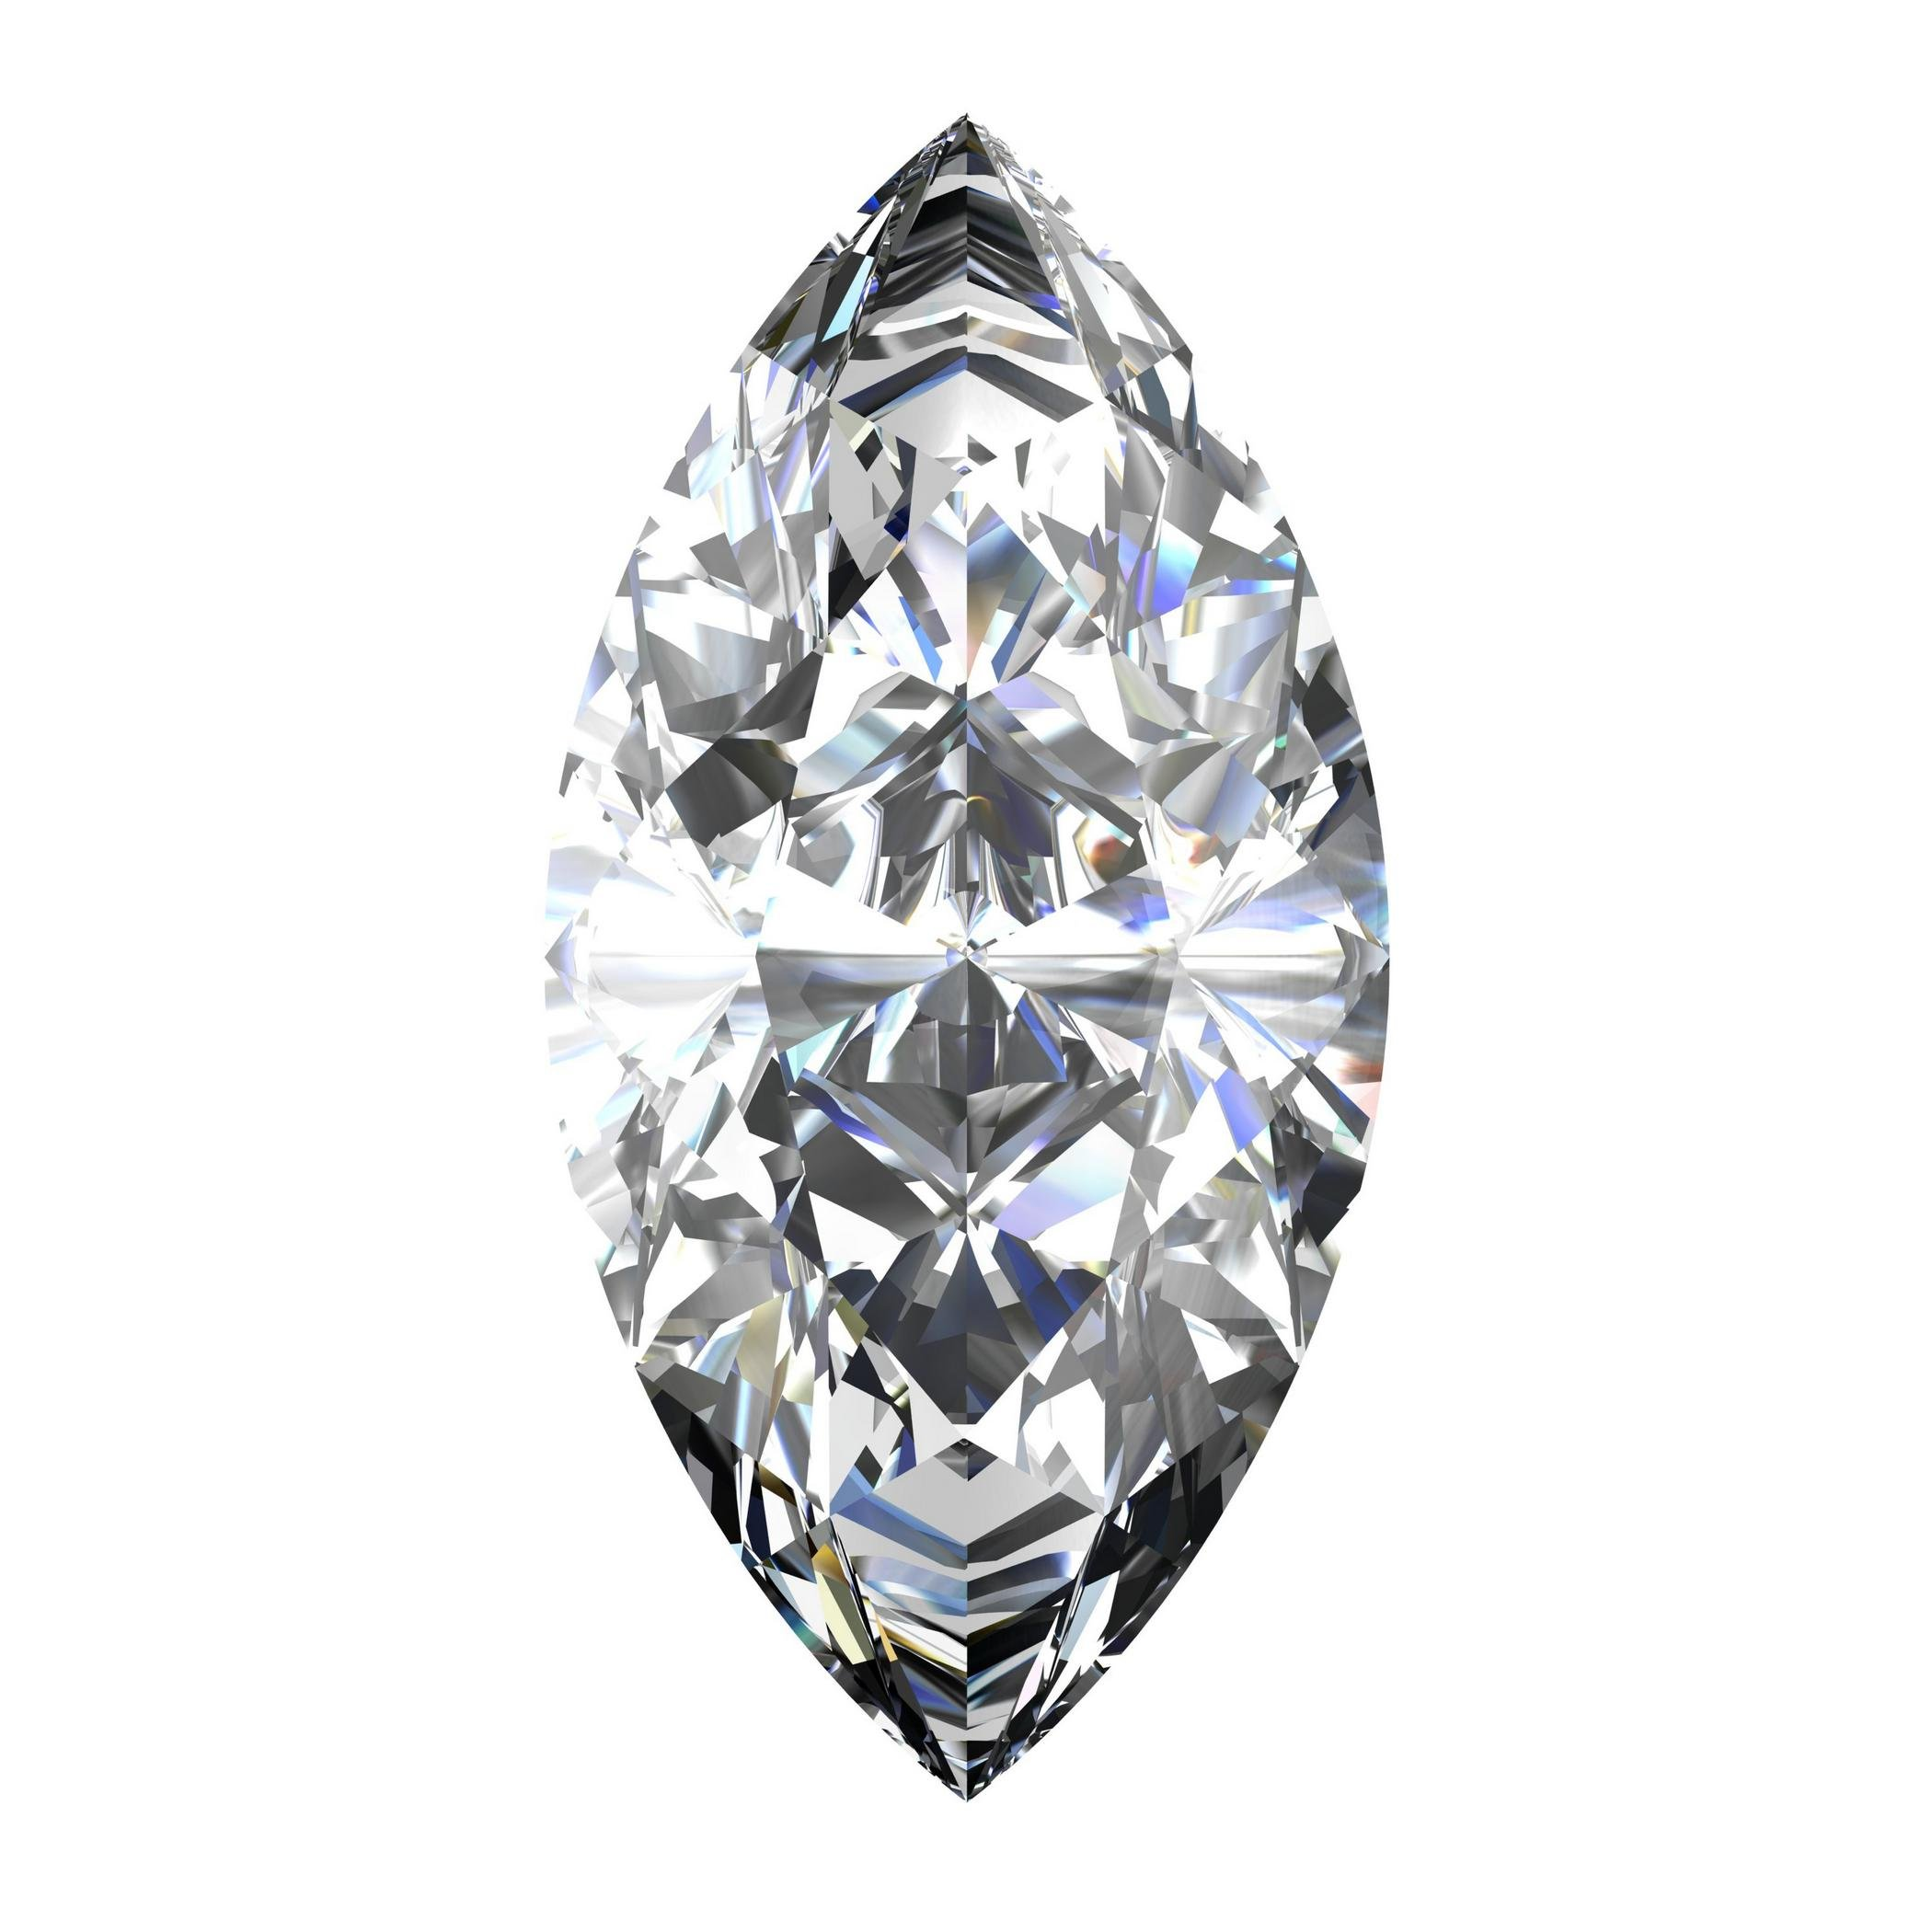 GIA Certified Natural 1.01 Carat Marquise Diamond with D Color & VS1 Clarity